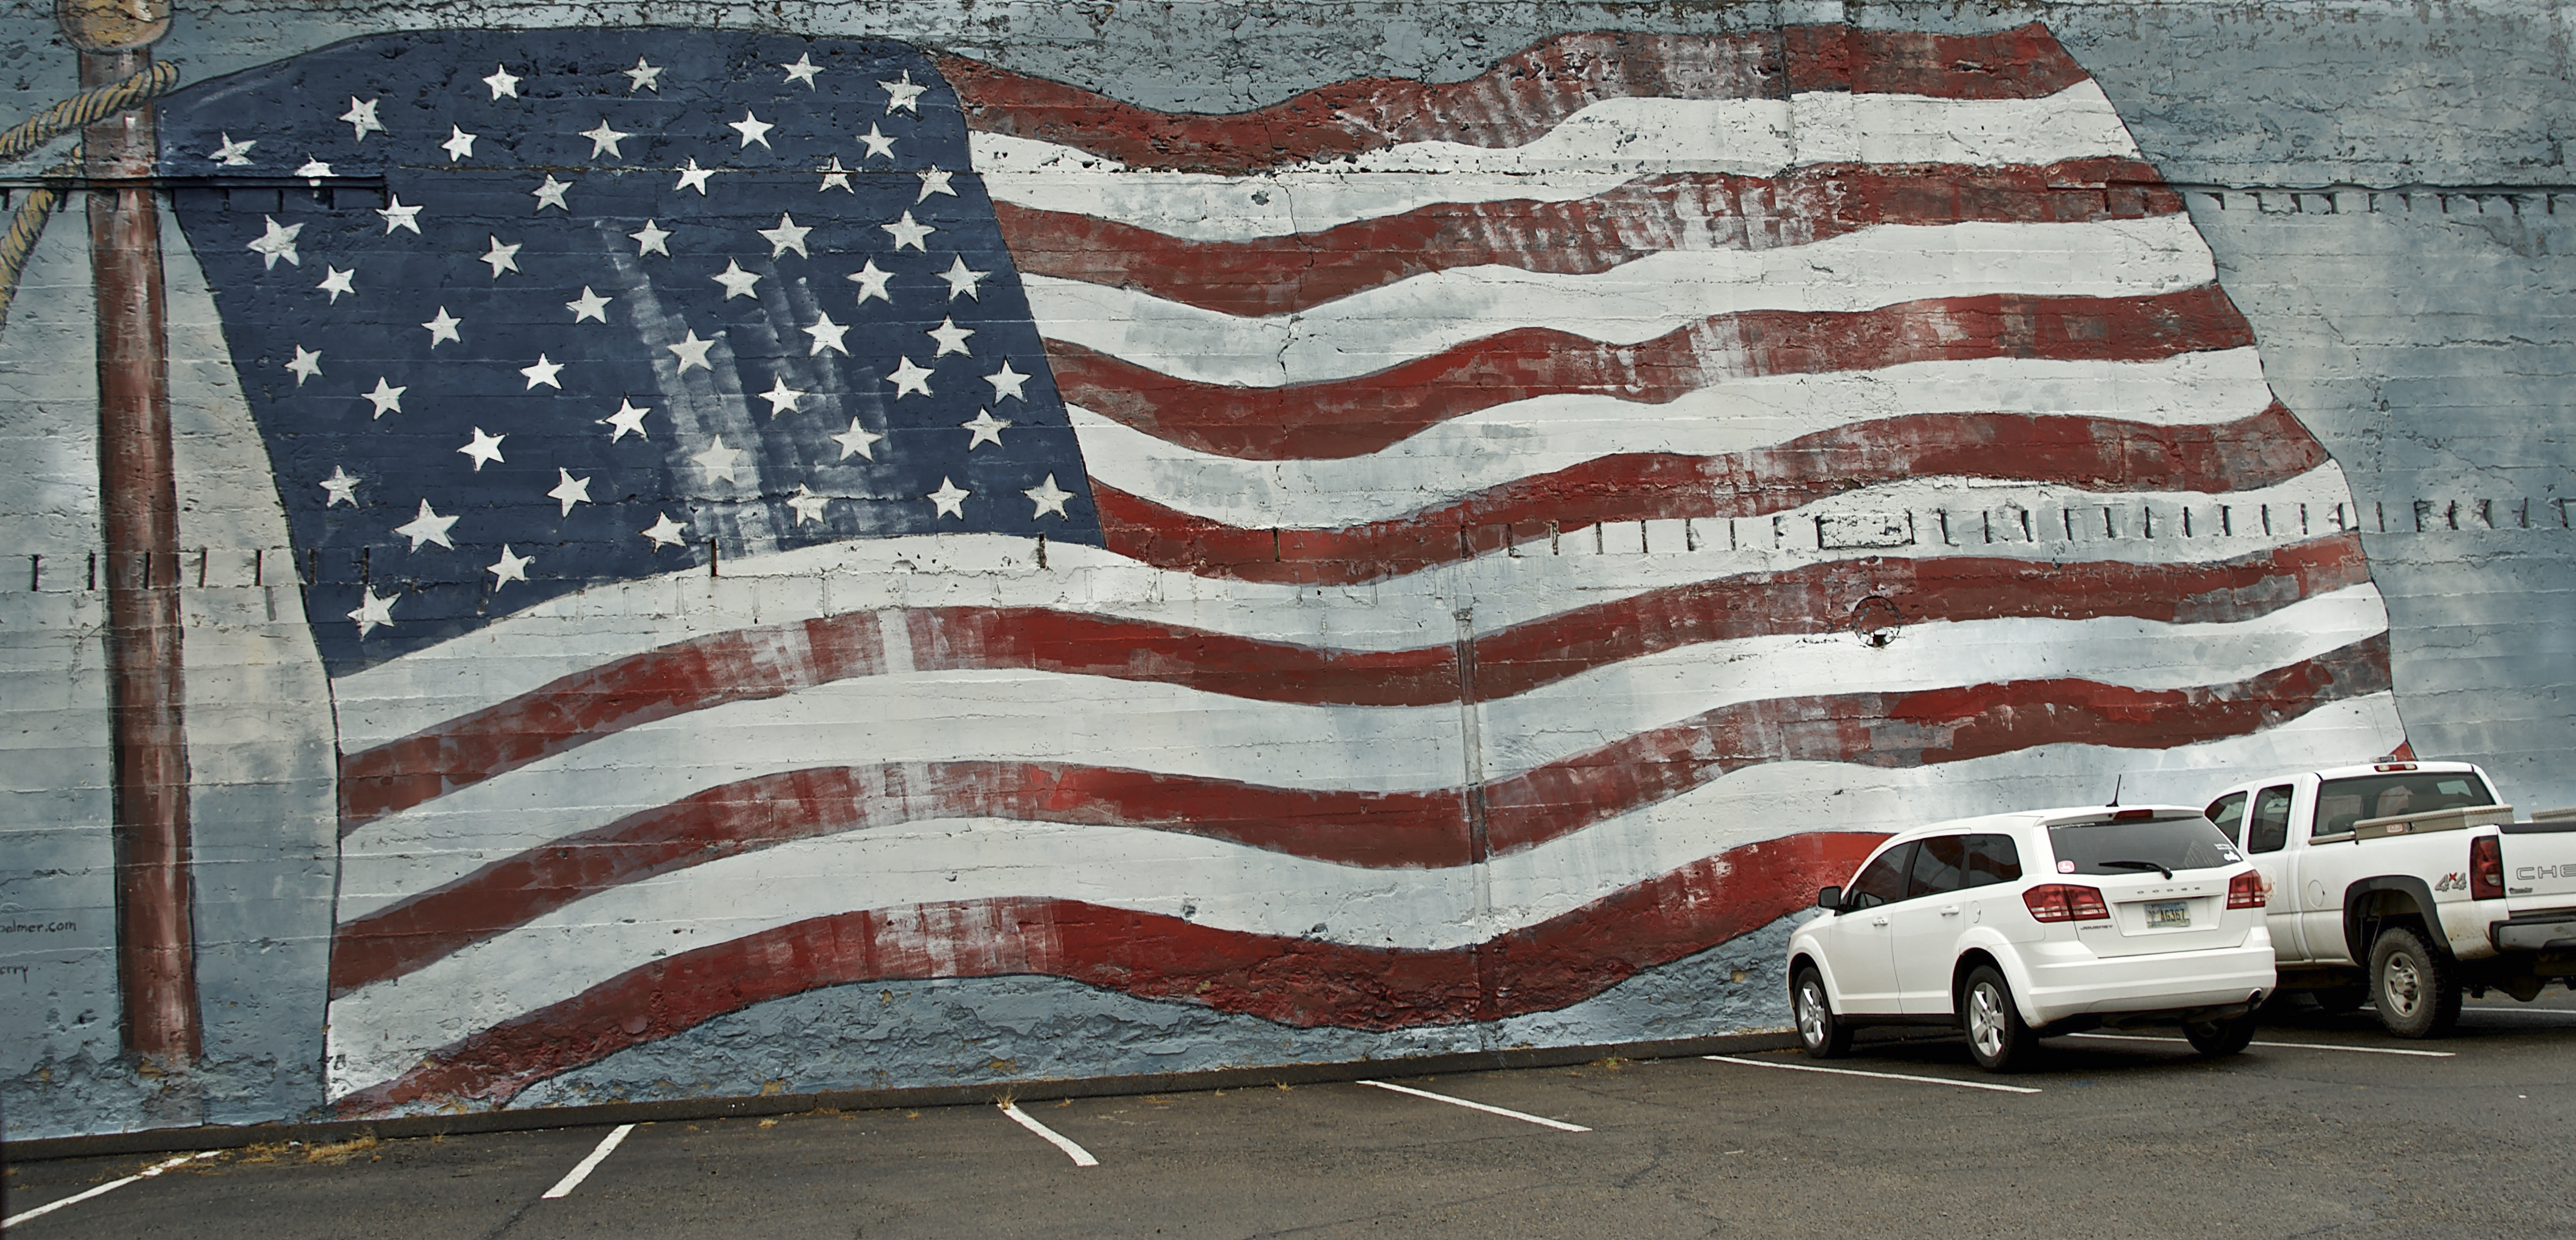 American flag wall mural flickr photo sharing for American flag wall mural